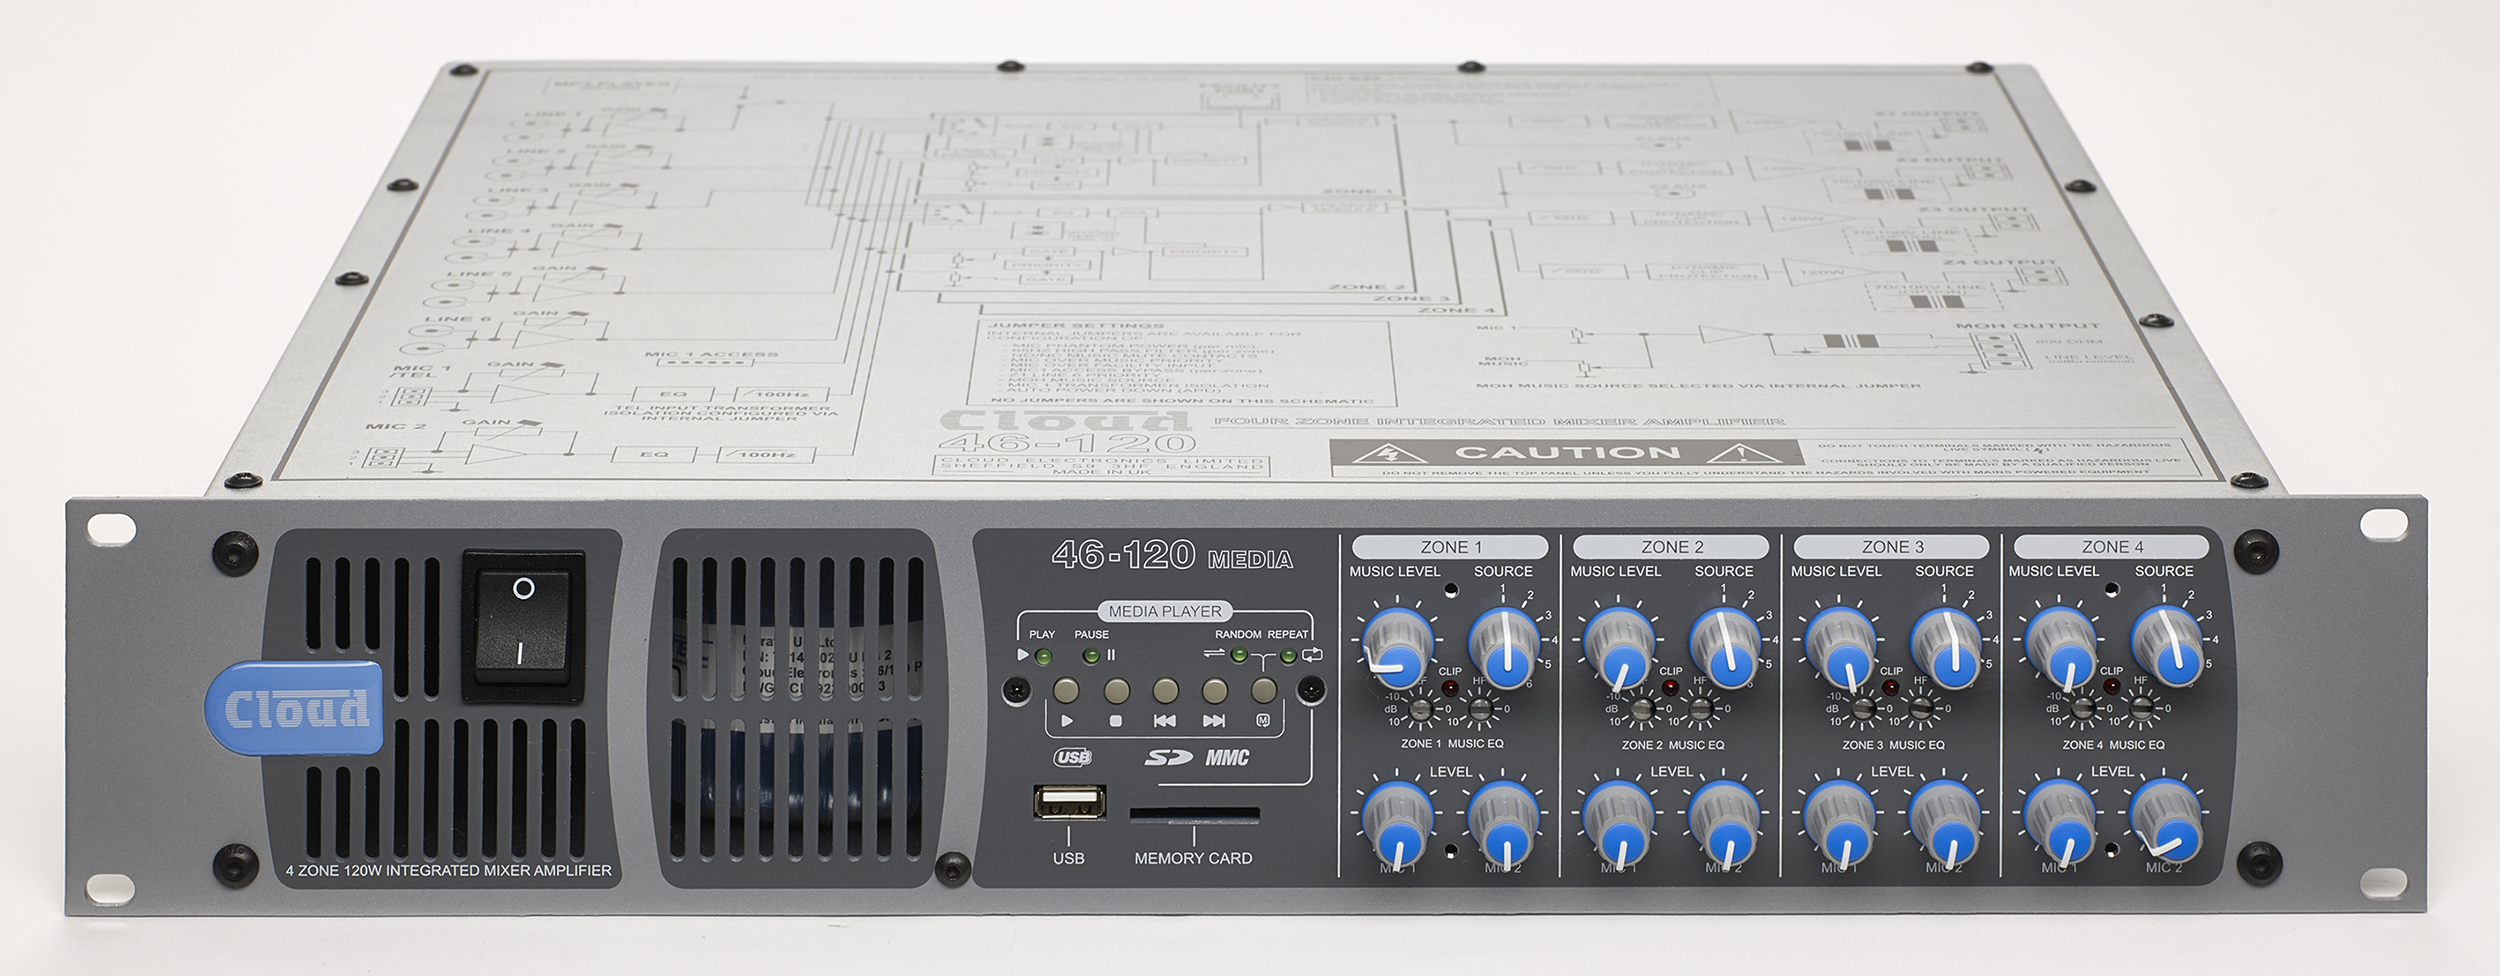 The Cloud 46-120 and 46-120Media are now available for shipping!